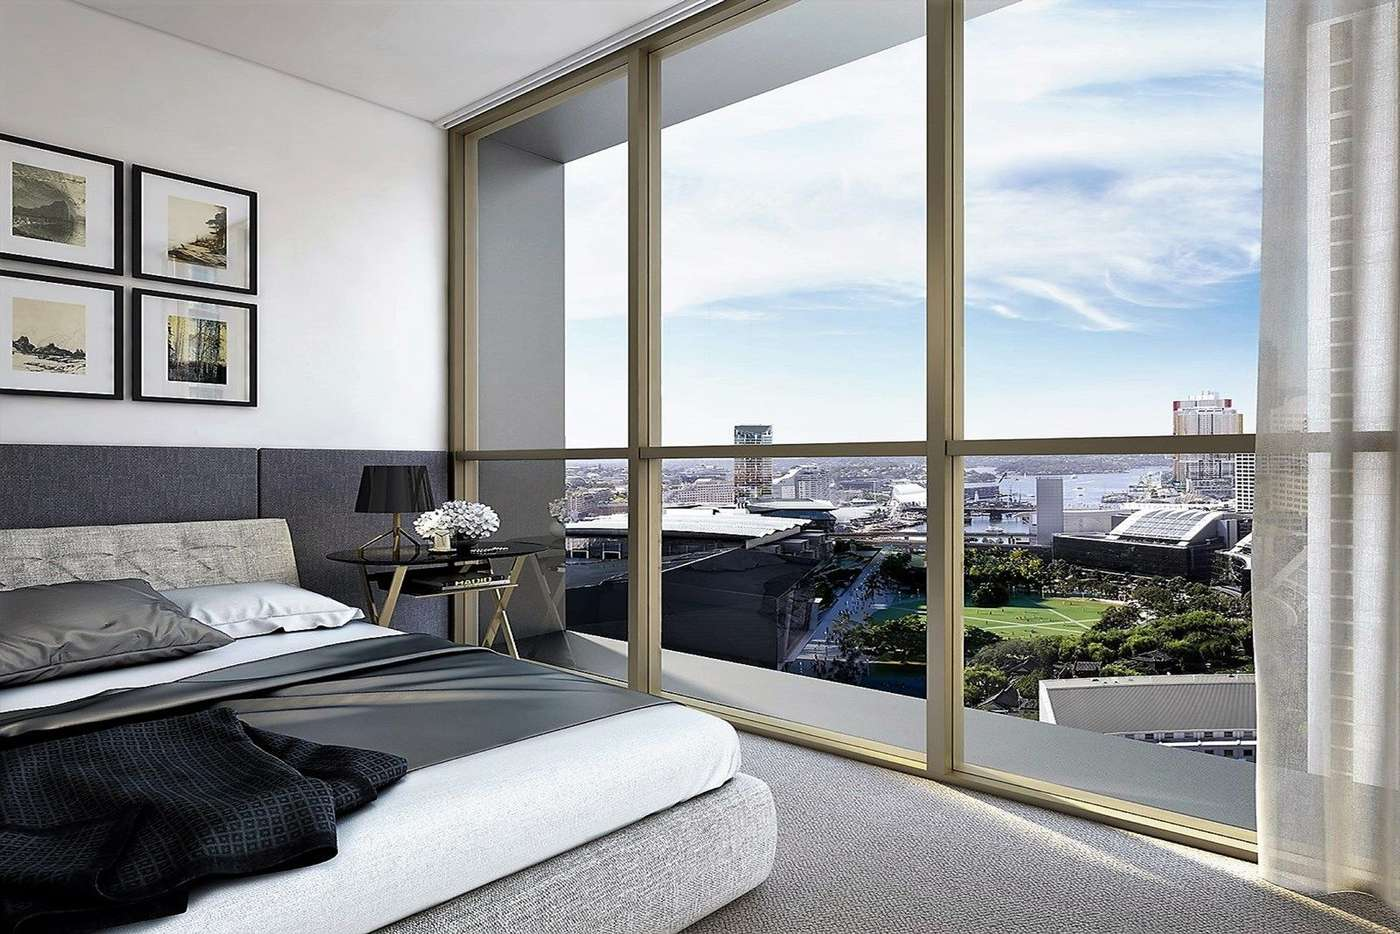 Main view of Homely apartment listing, 16D/SE1 Darling Rise, Harbour Street, Sydney NSW 2000